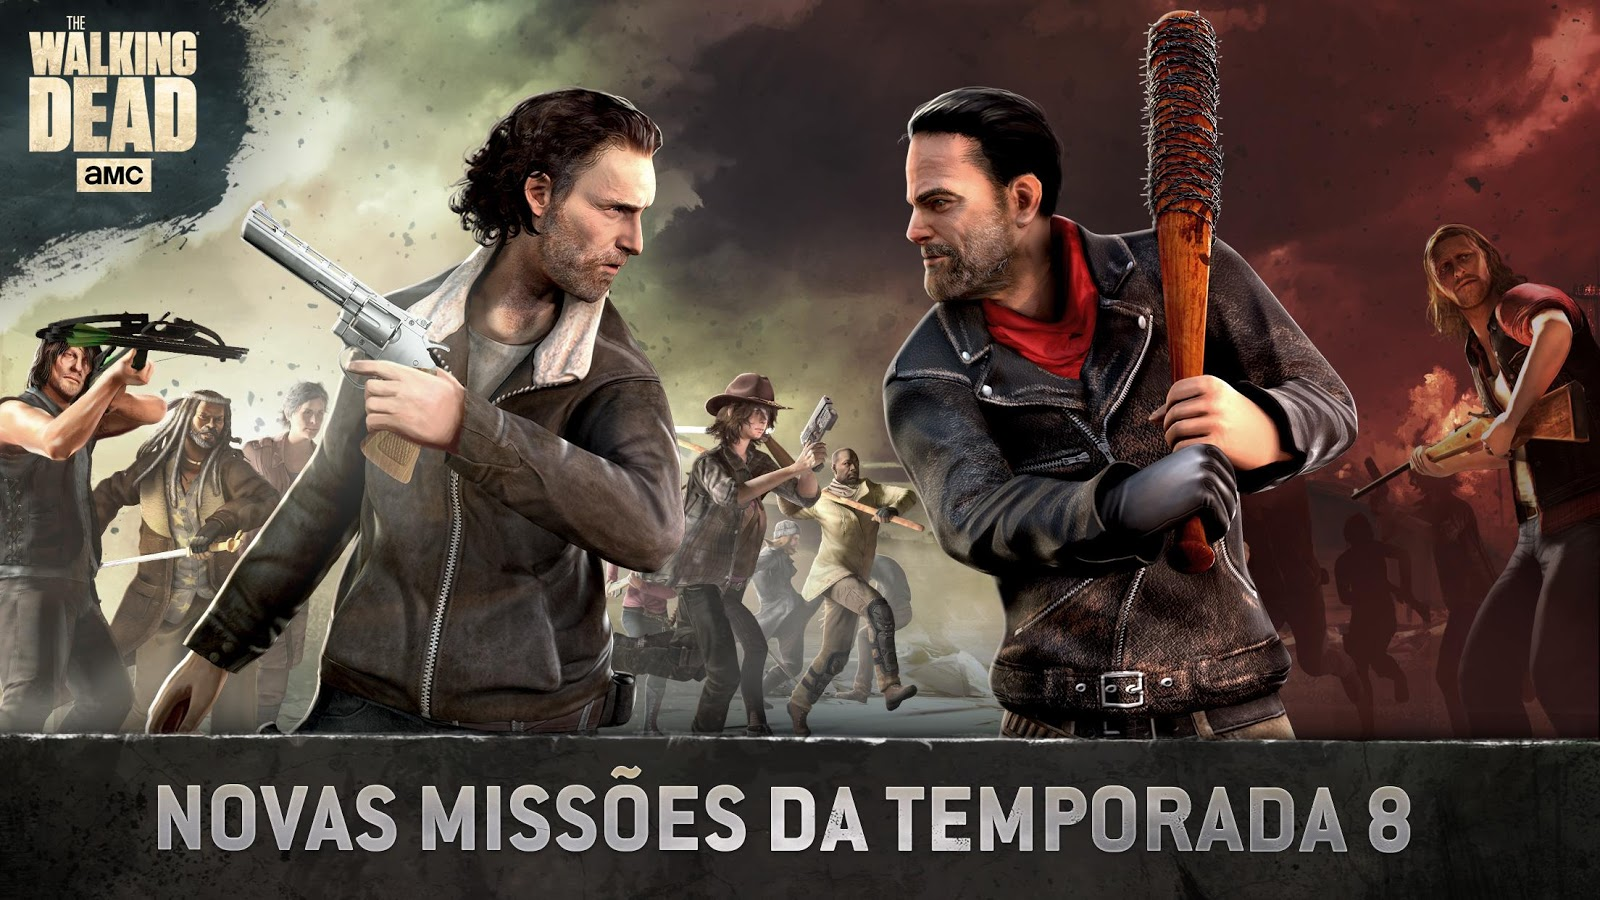 Walking Dead Wallpaper For Android: The Walking Dead No Man's Land